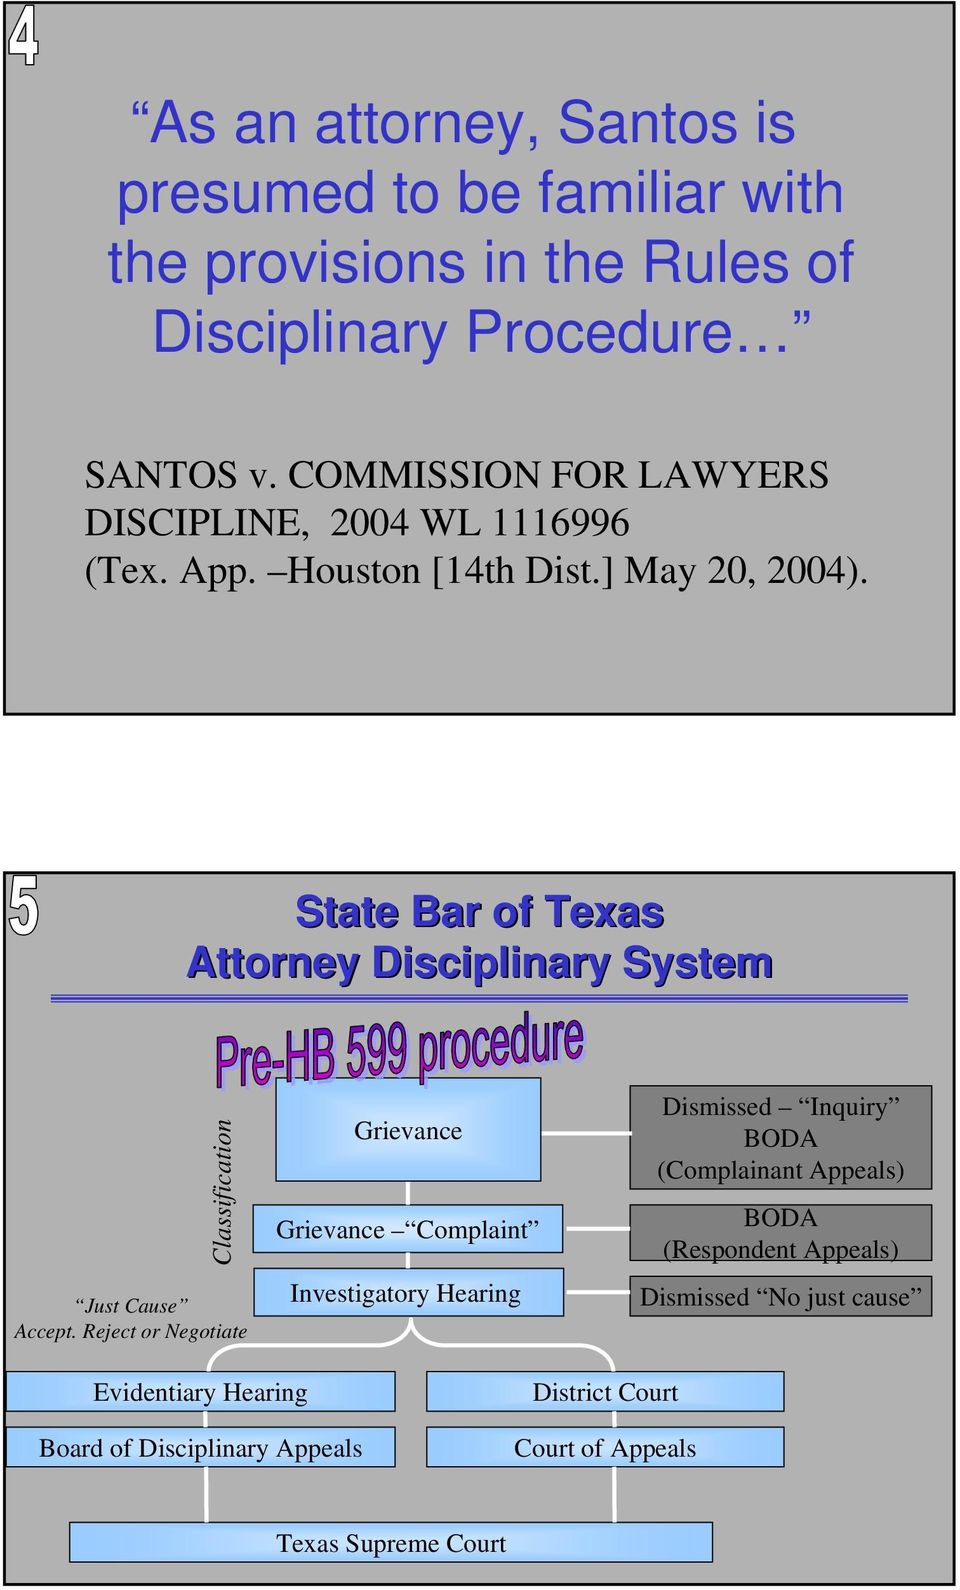 State Bar of Texas Attorney Disciplinary System Classification Just Cause Accept.